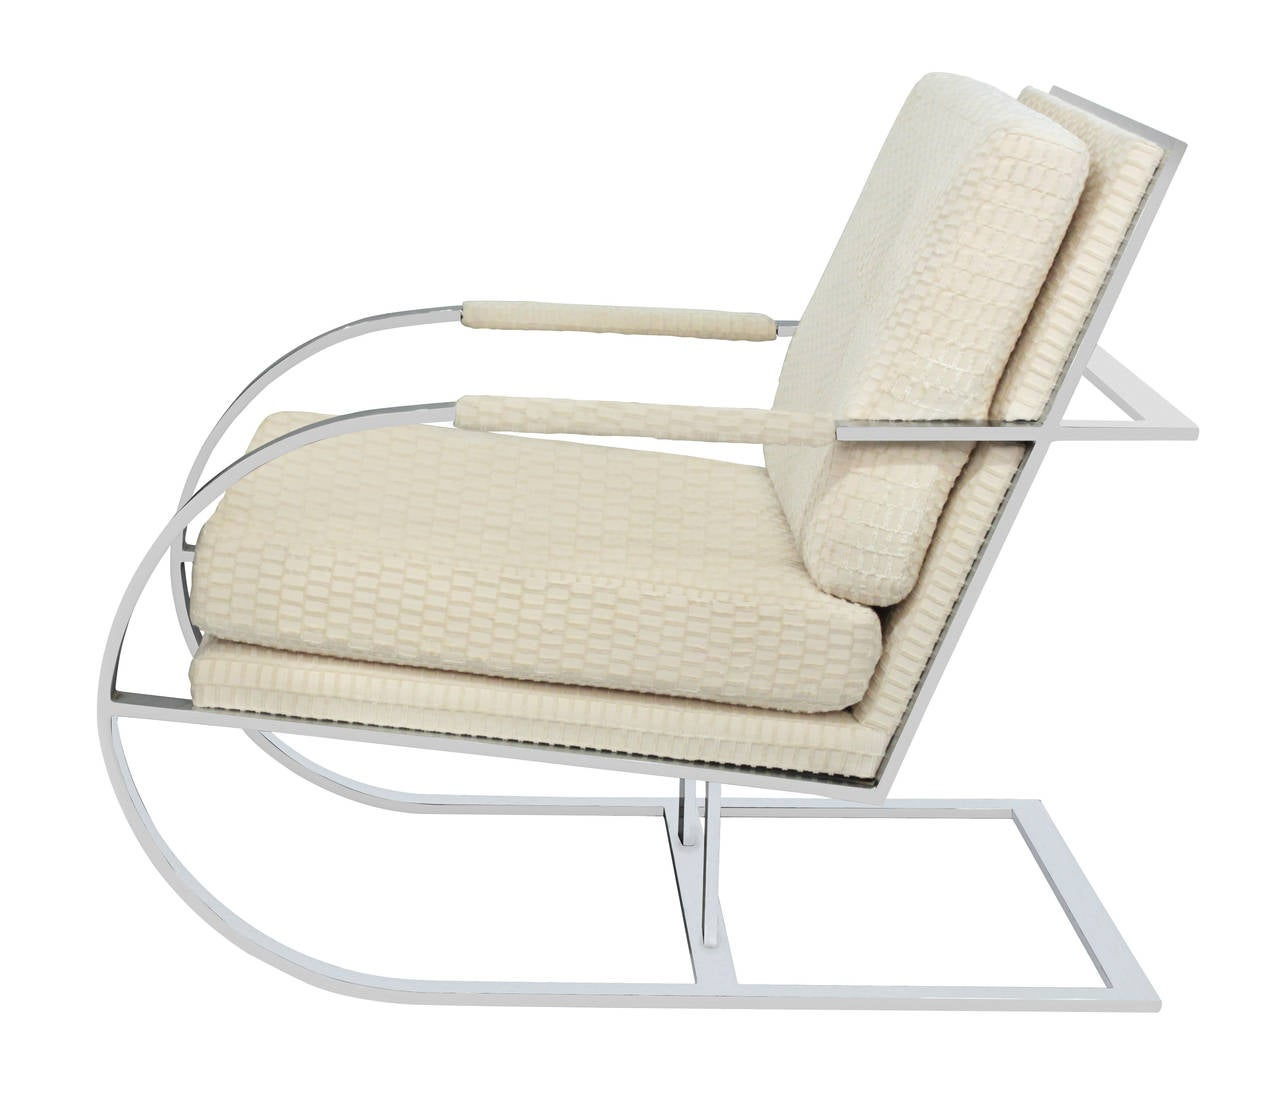 Cantilevered Lounge Chair with Frame in Chrome by Milo Baughman 3